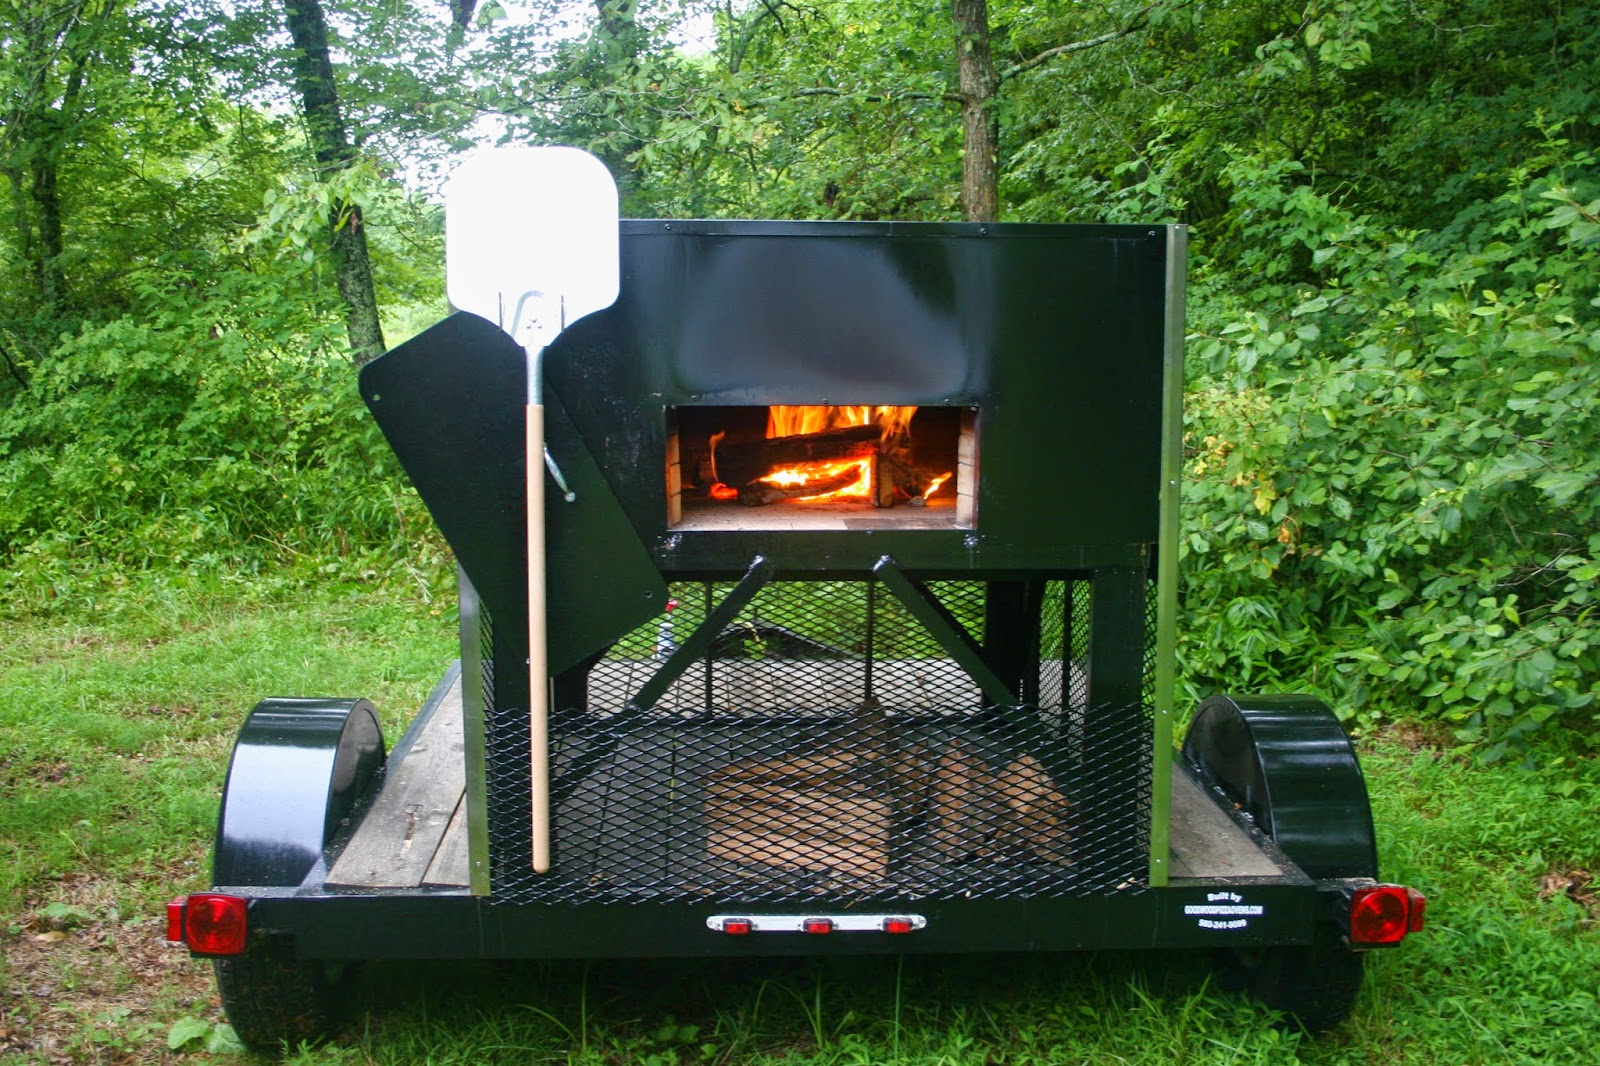 Mobile Wood-fired Pizza Oven at Big Switch Farm